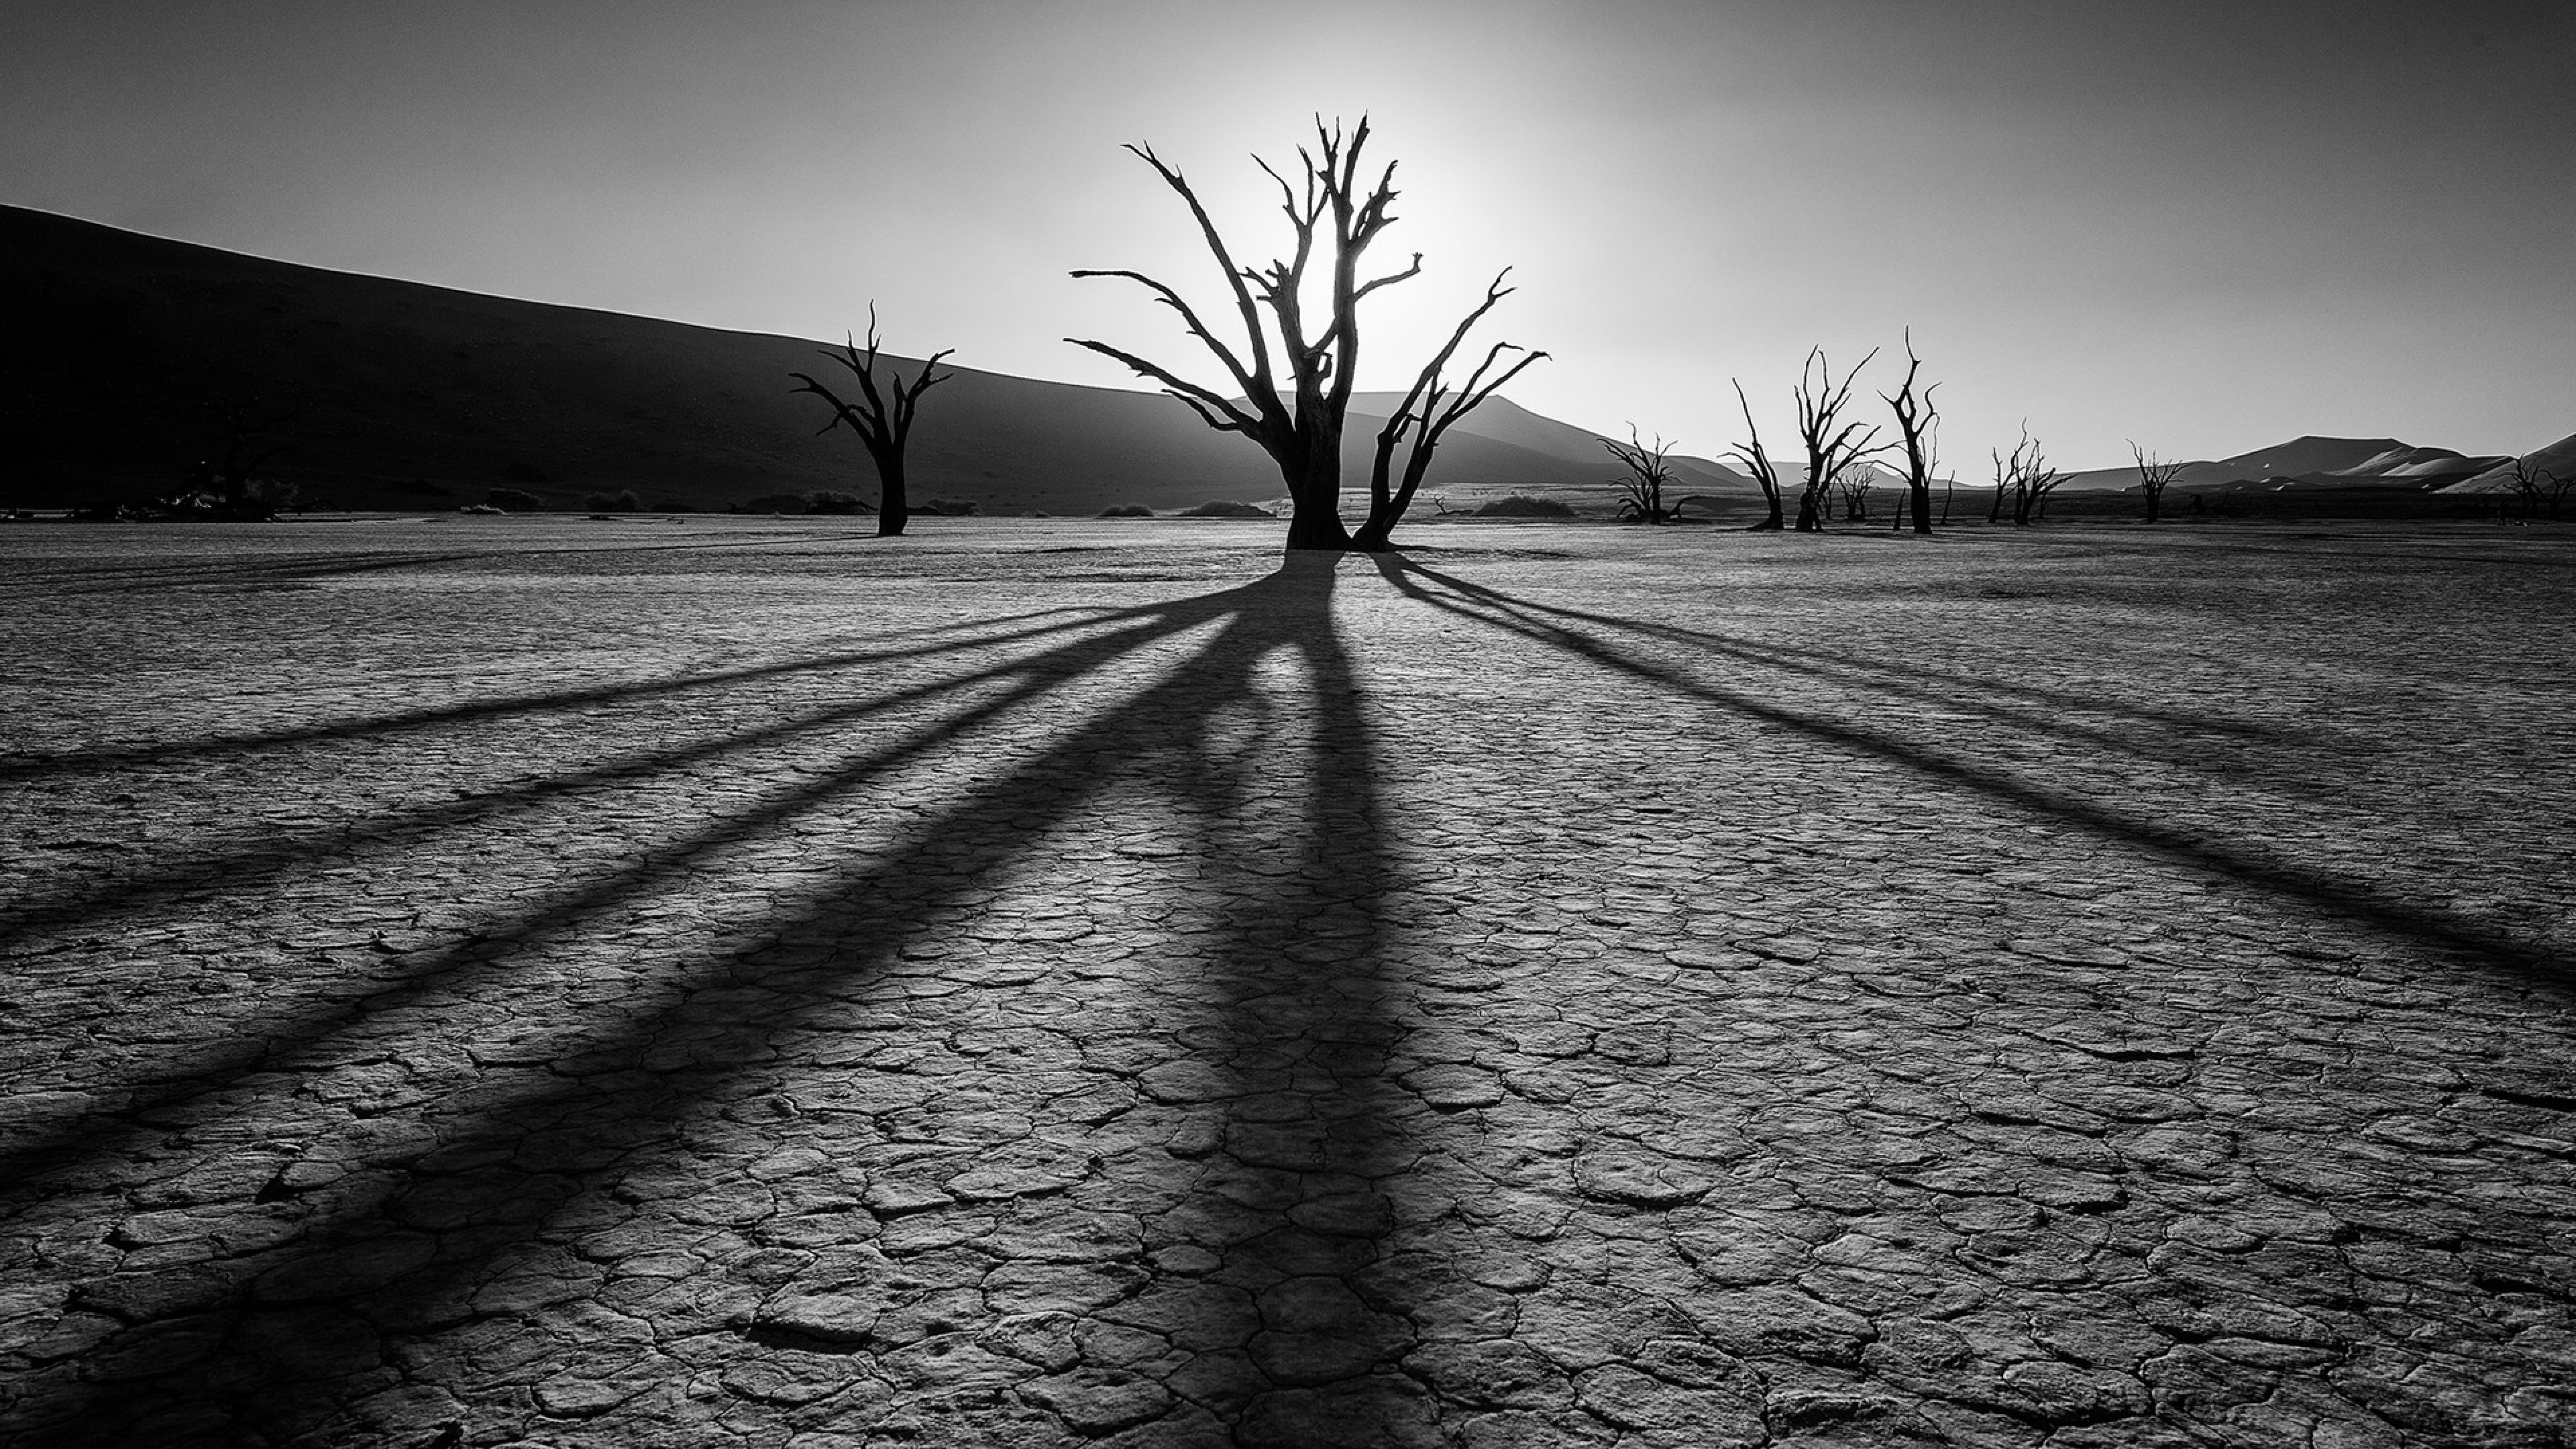 Plants Drought Black and white Wallpaper Background 4K Ultra HD 3840x2160